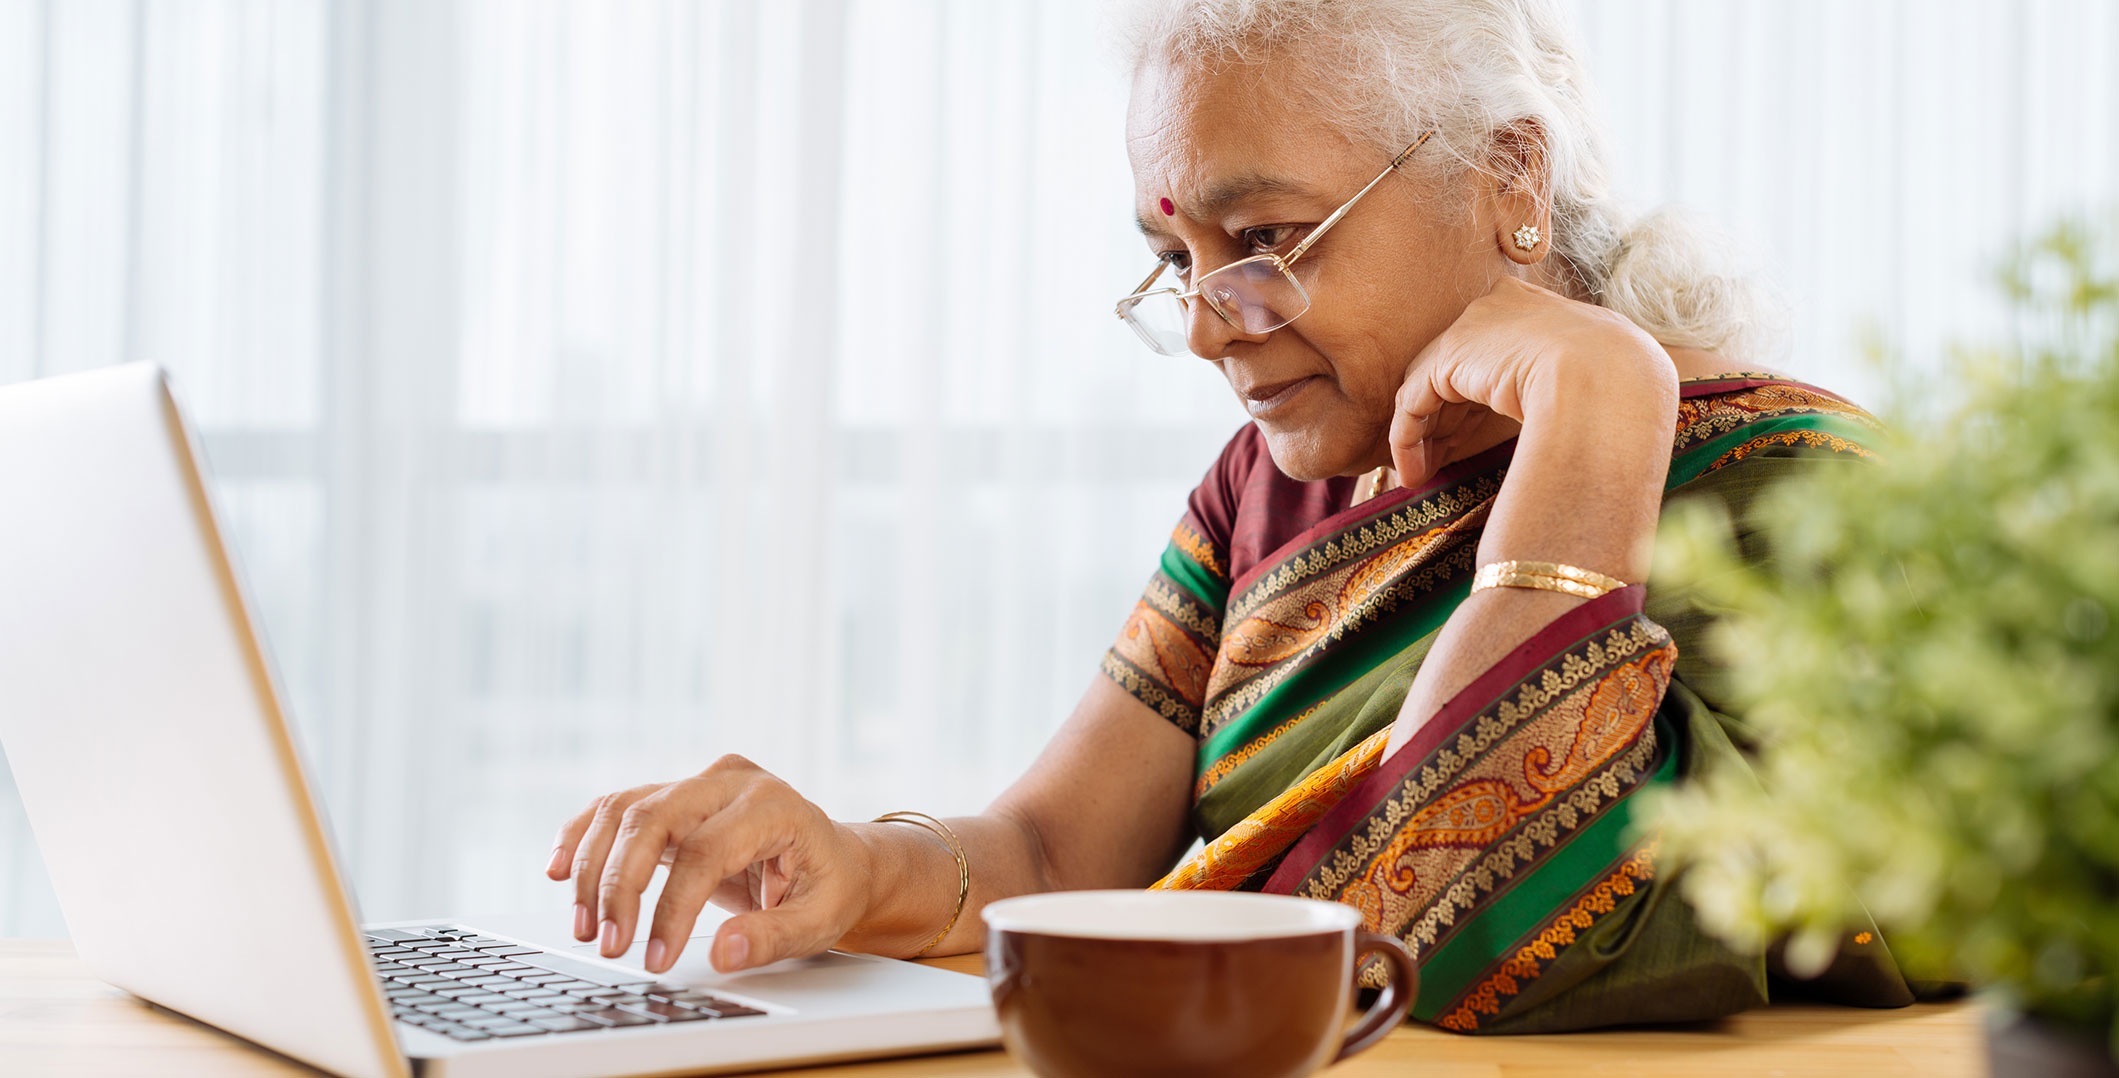 Indian lady working on laptop